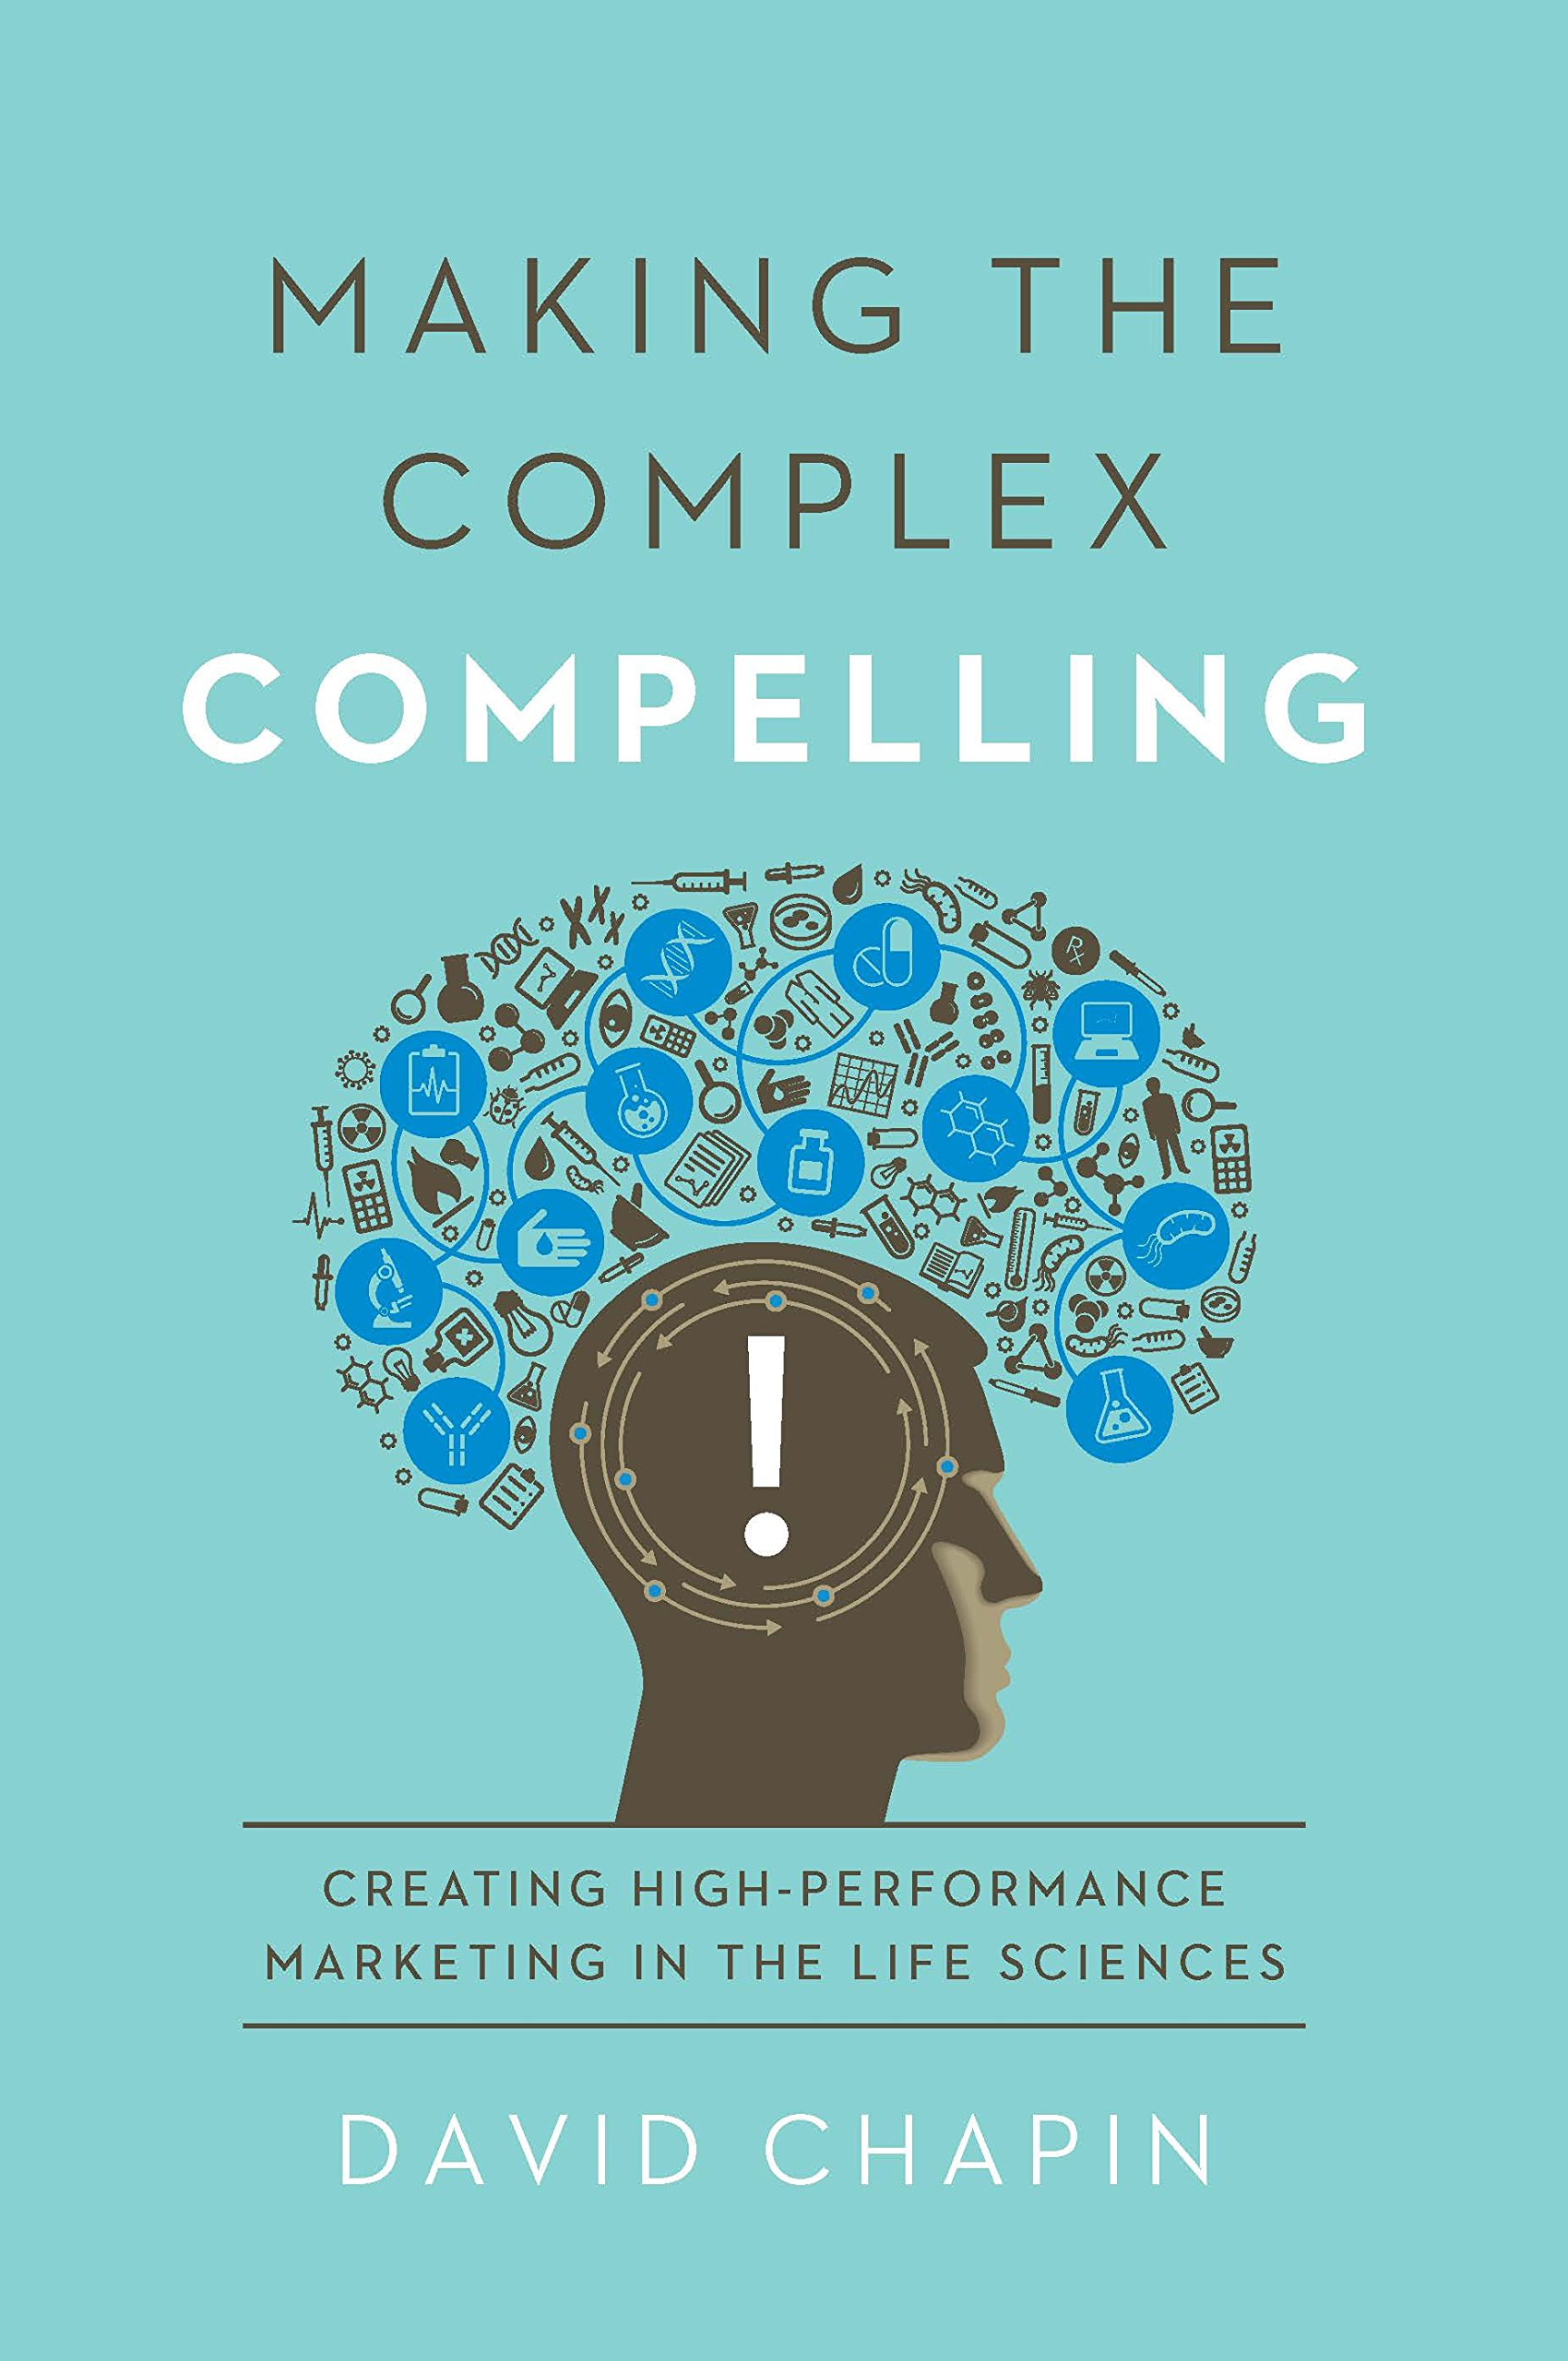 Making the Complex Compelling: Creating High-Performance Marketing in the Life Sciences